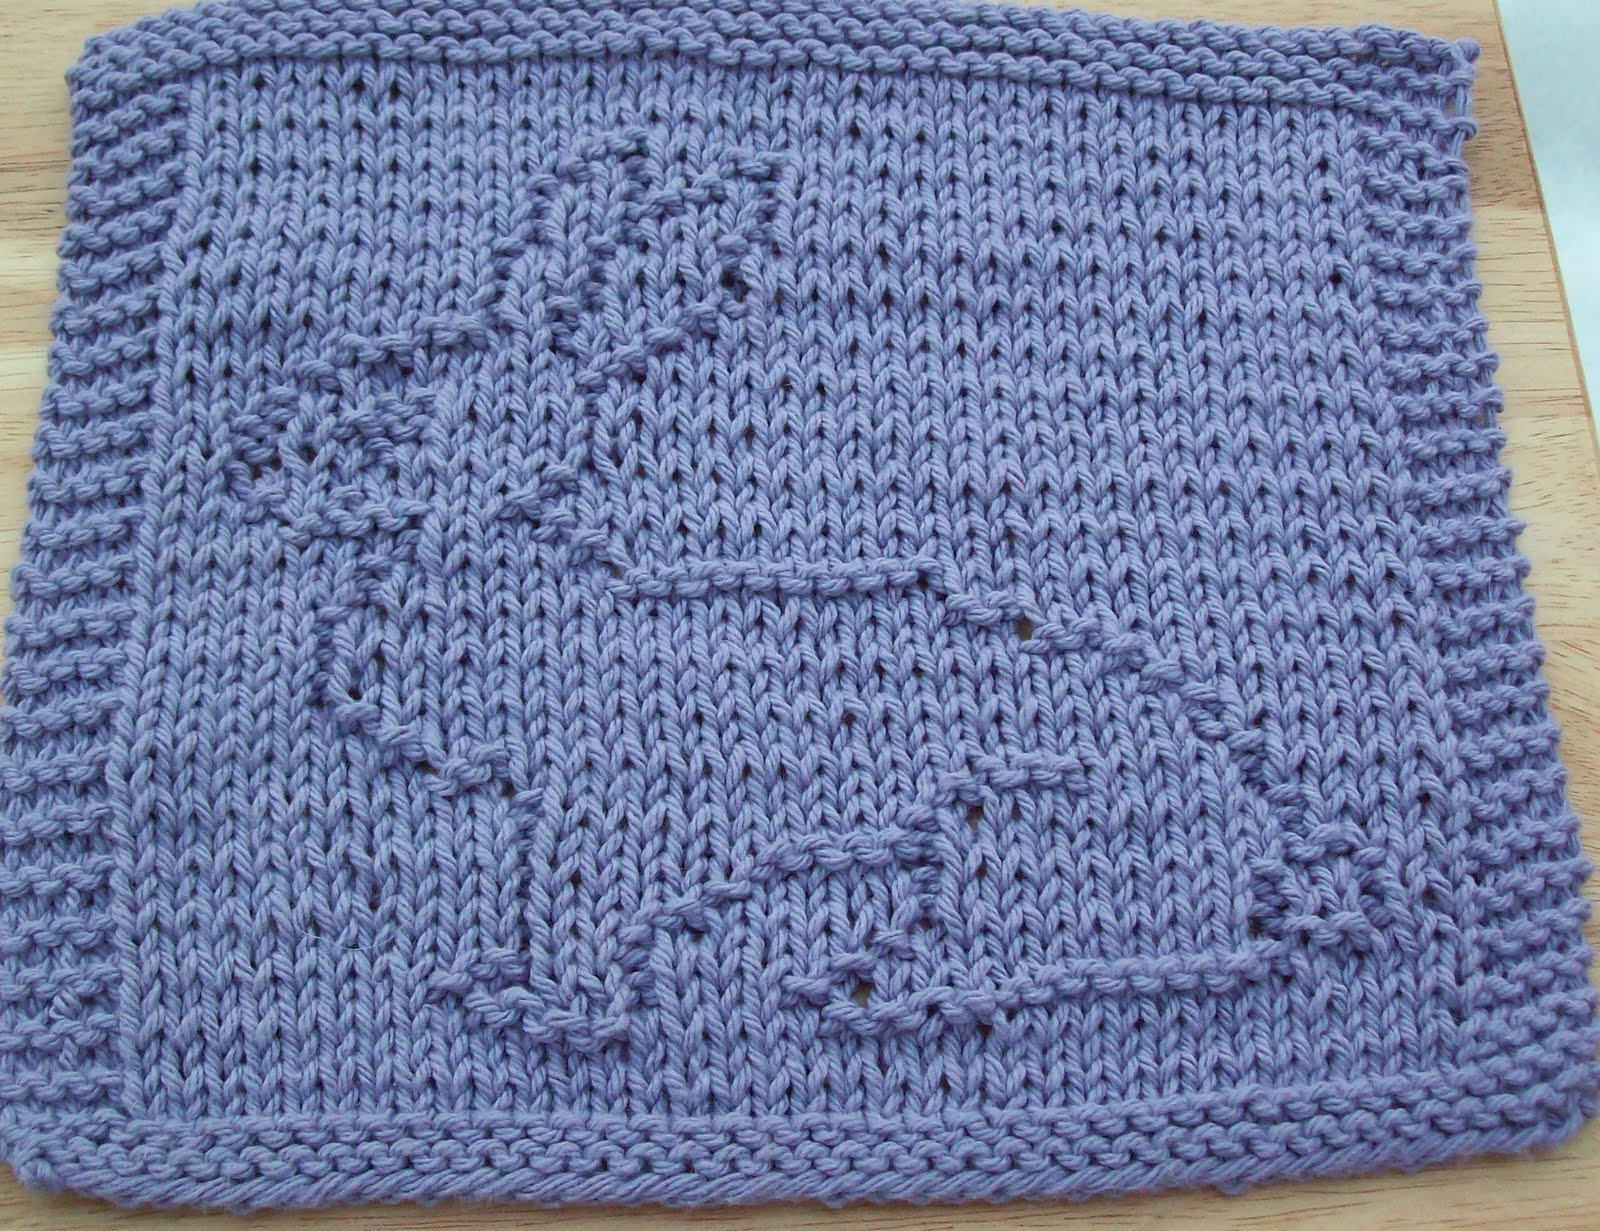 Knitted Dishcloth Patterns For Easter : DigKnitty Designs: Pretty Bunny Knit Dishcloth Pattern